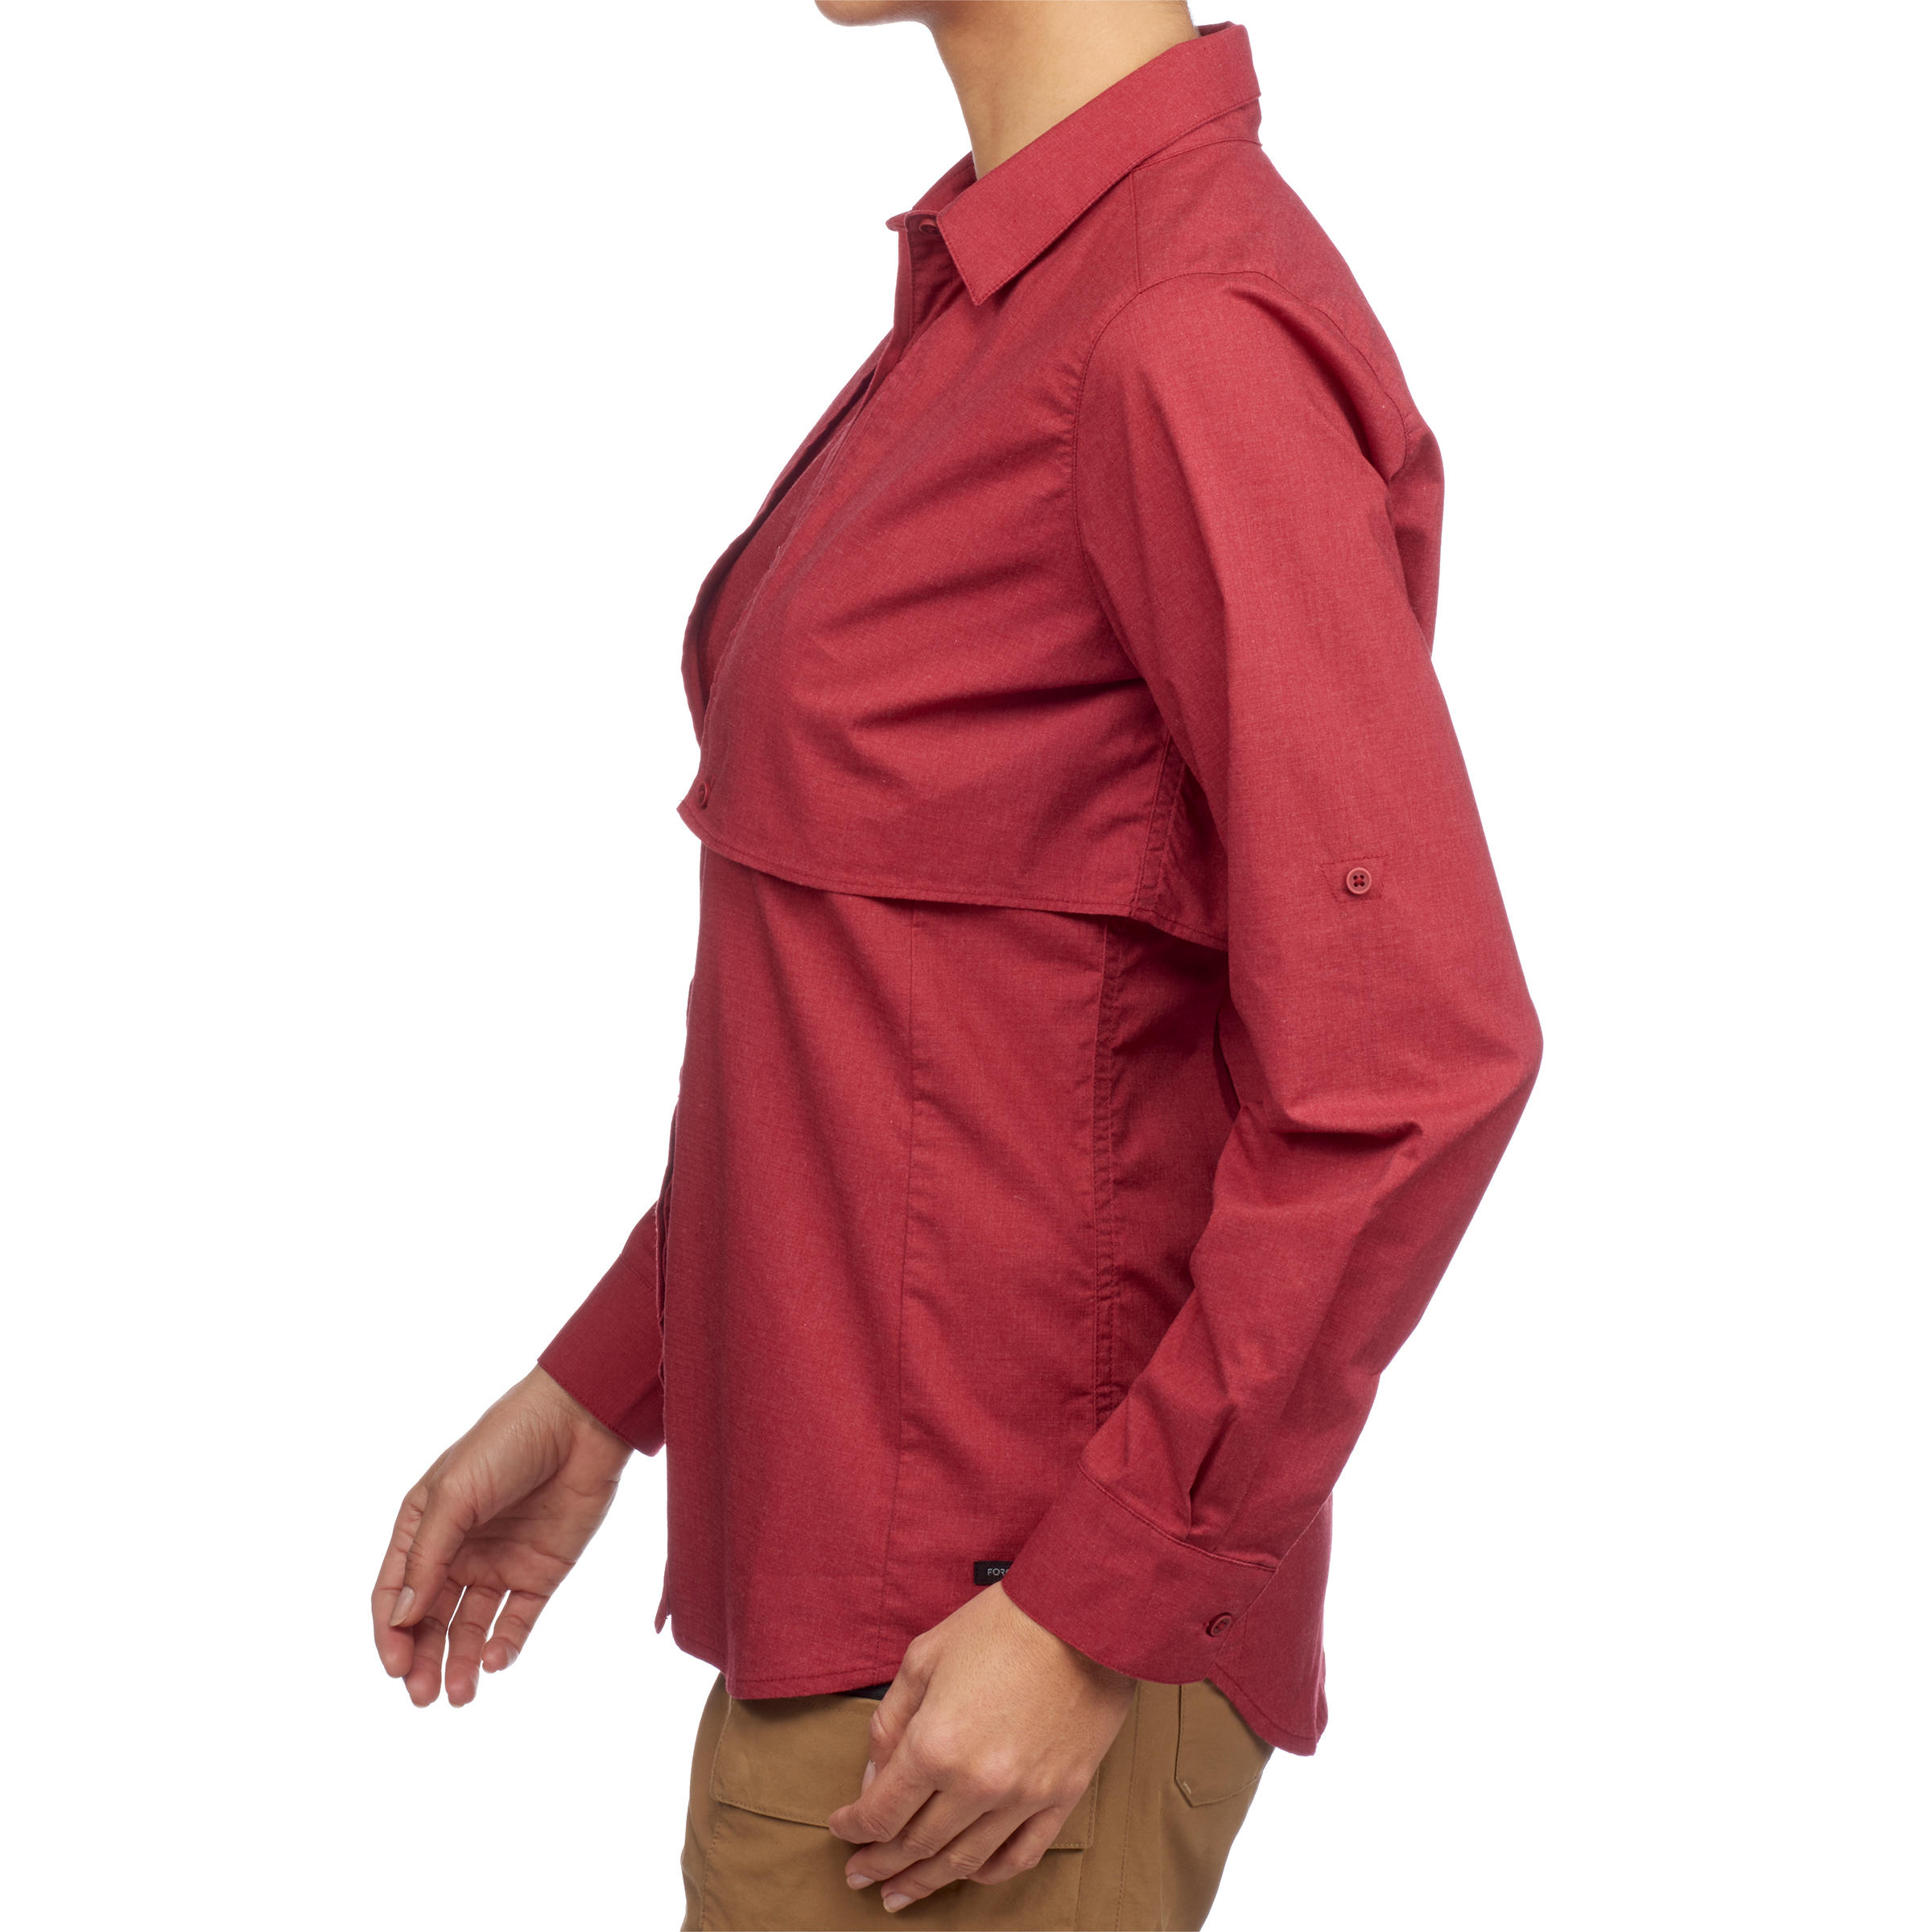 Travel 500 Women's Modular Long-Sleeve Trekking Shirt - Burgundy